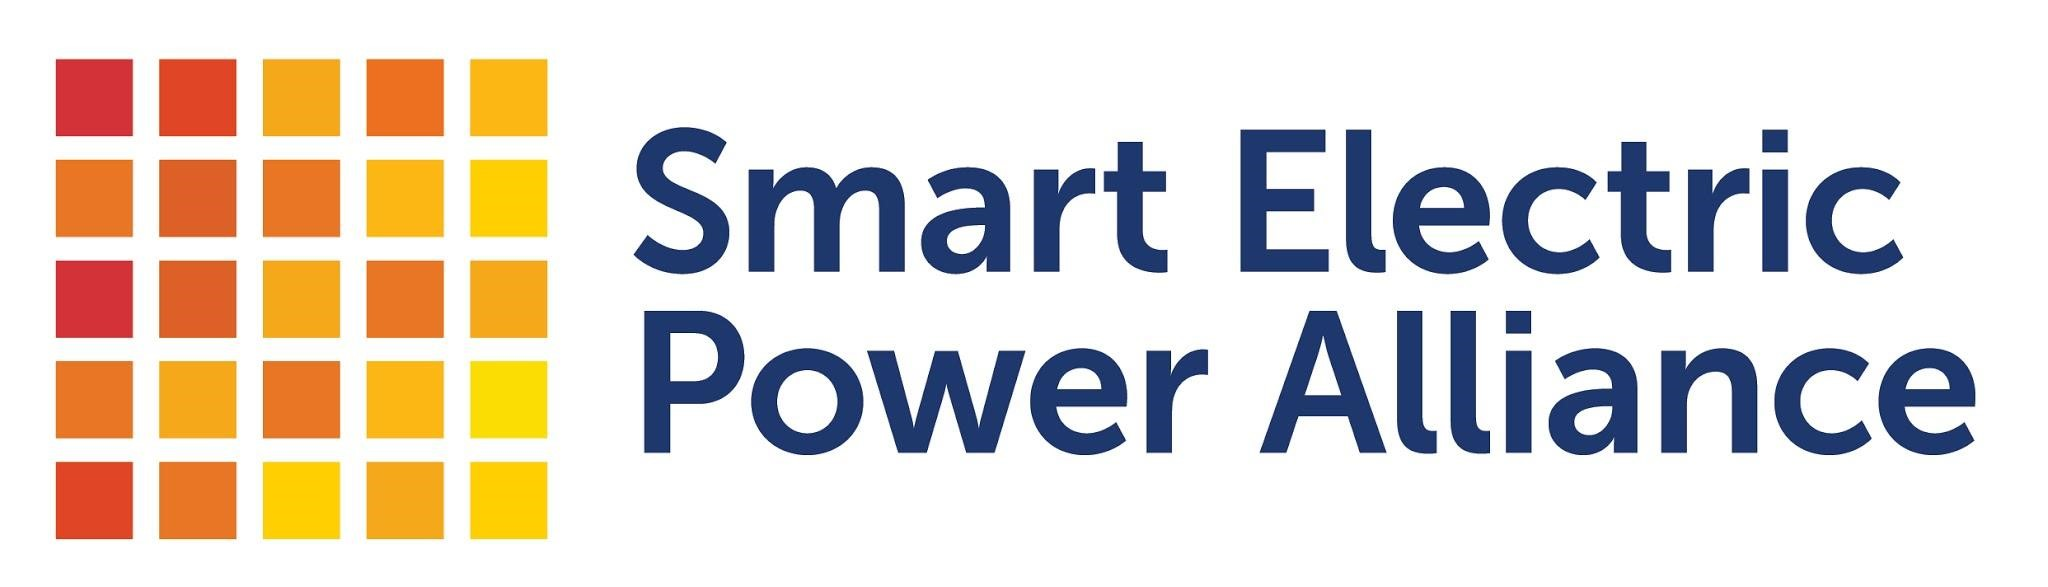 Smart Electric Power Alliance's Logo